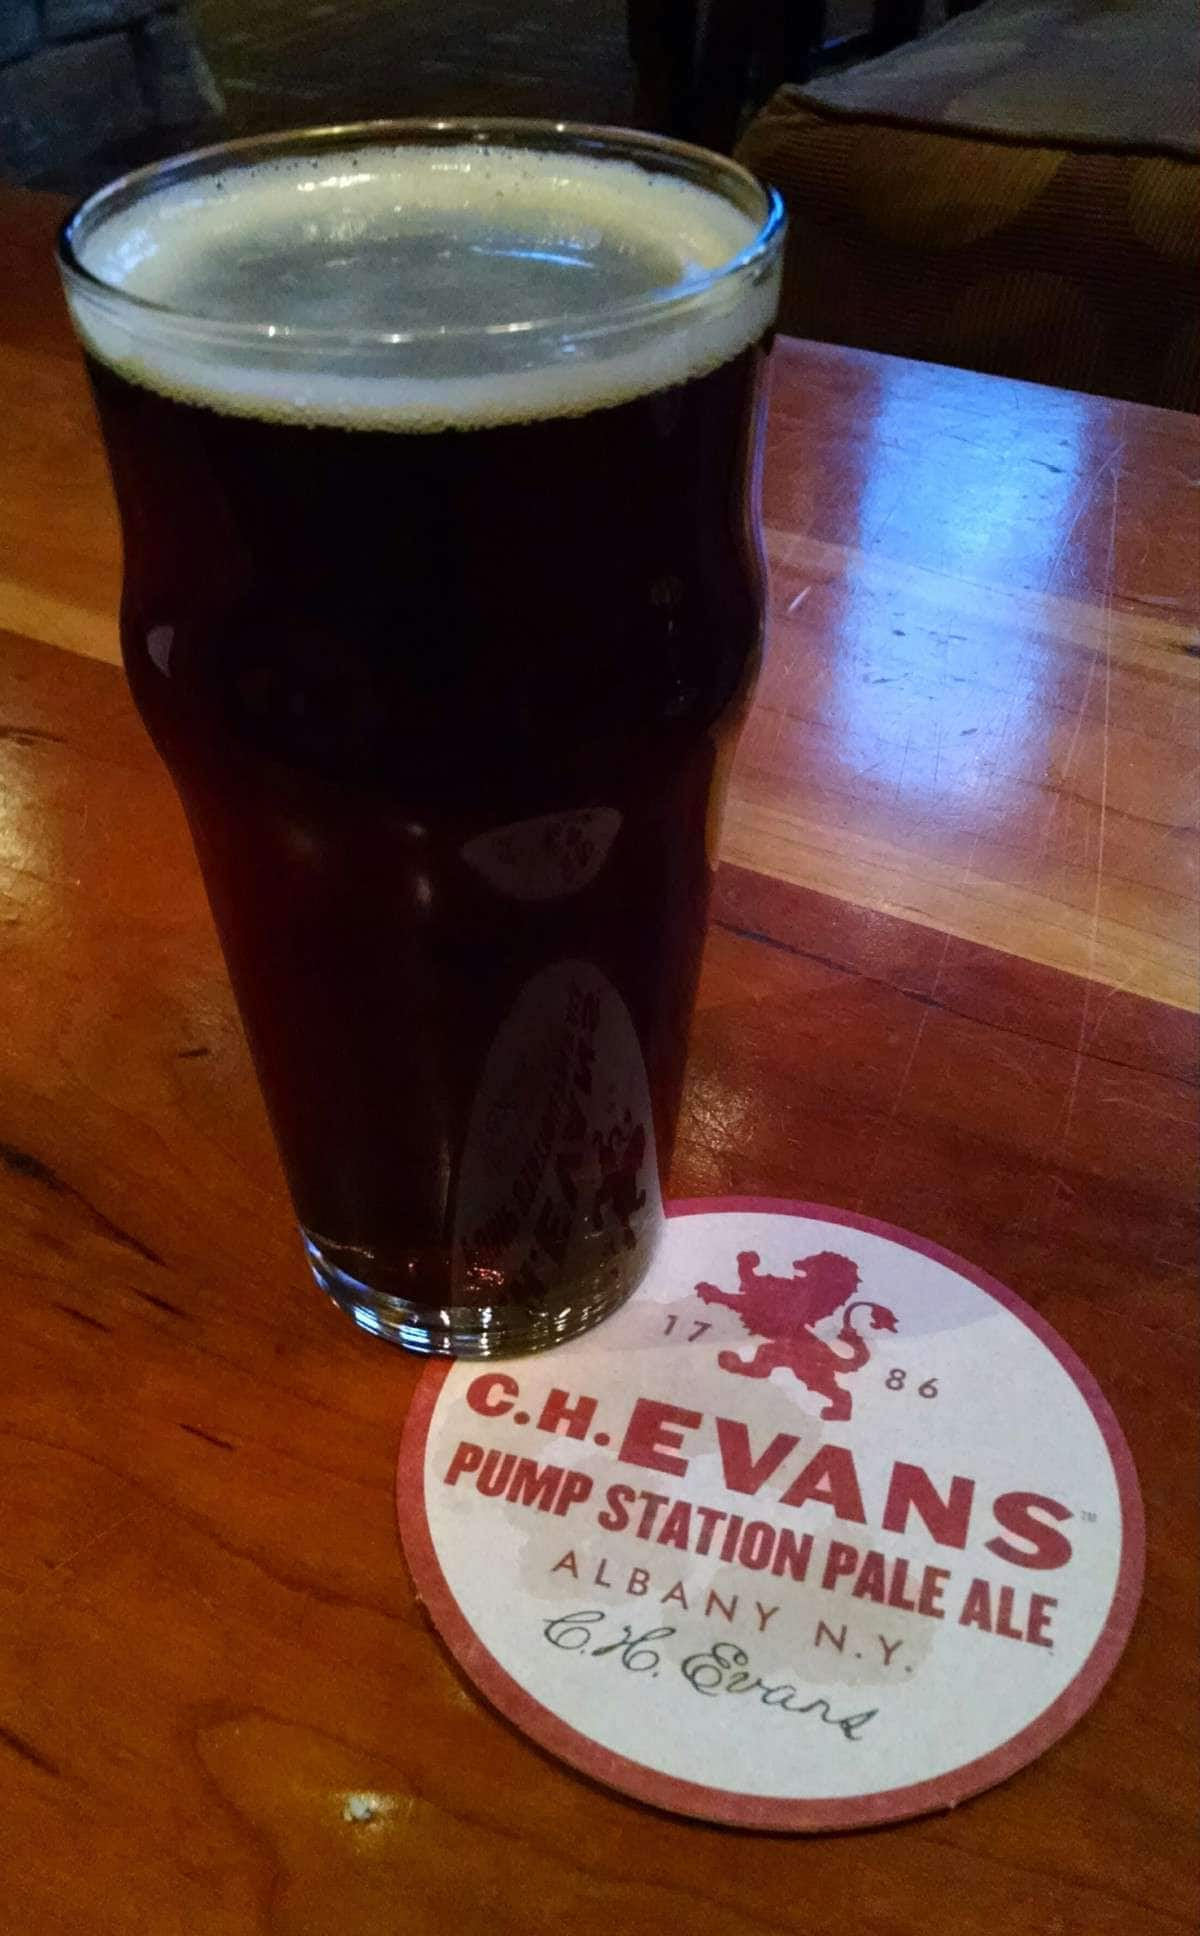 C. H. Evans Brewing Company at the Albany Pump Station